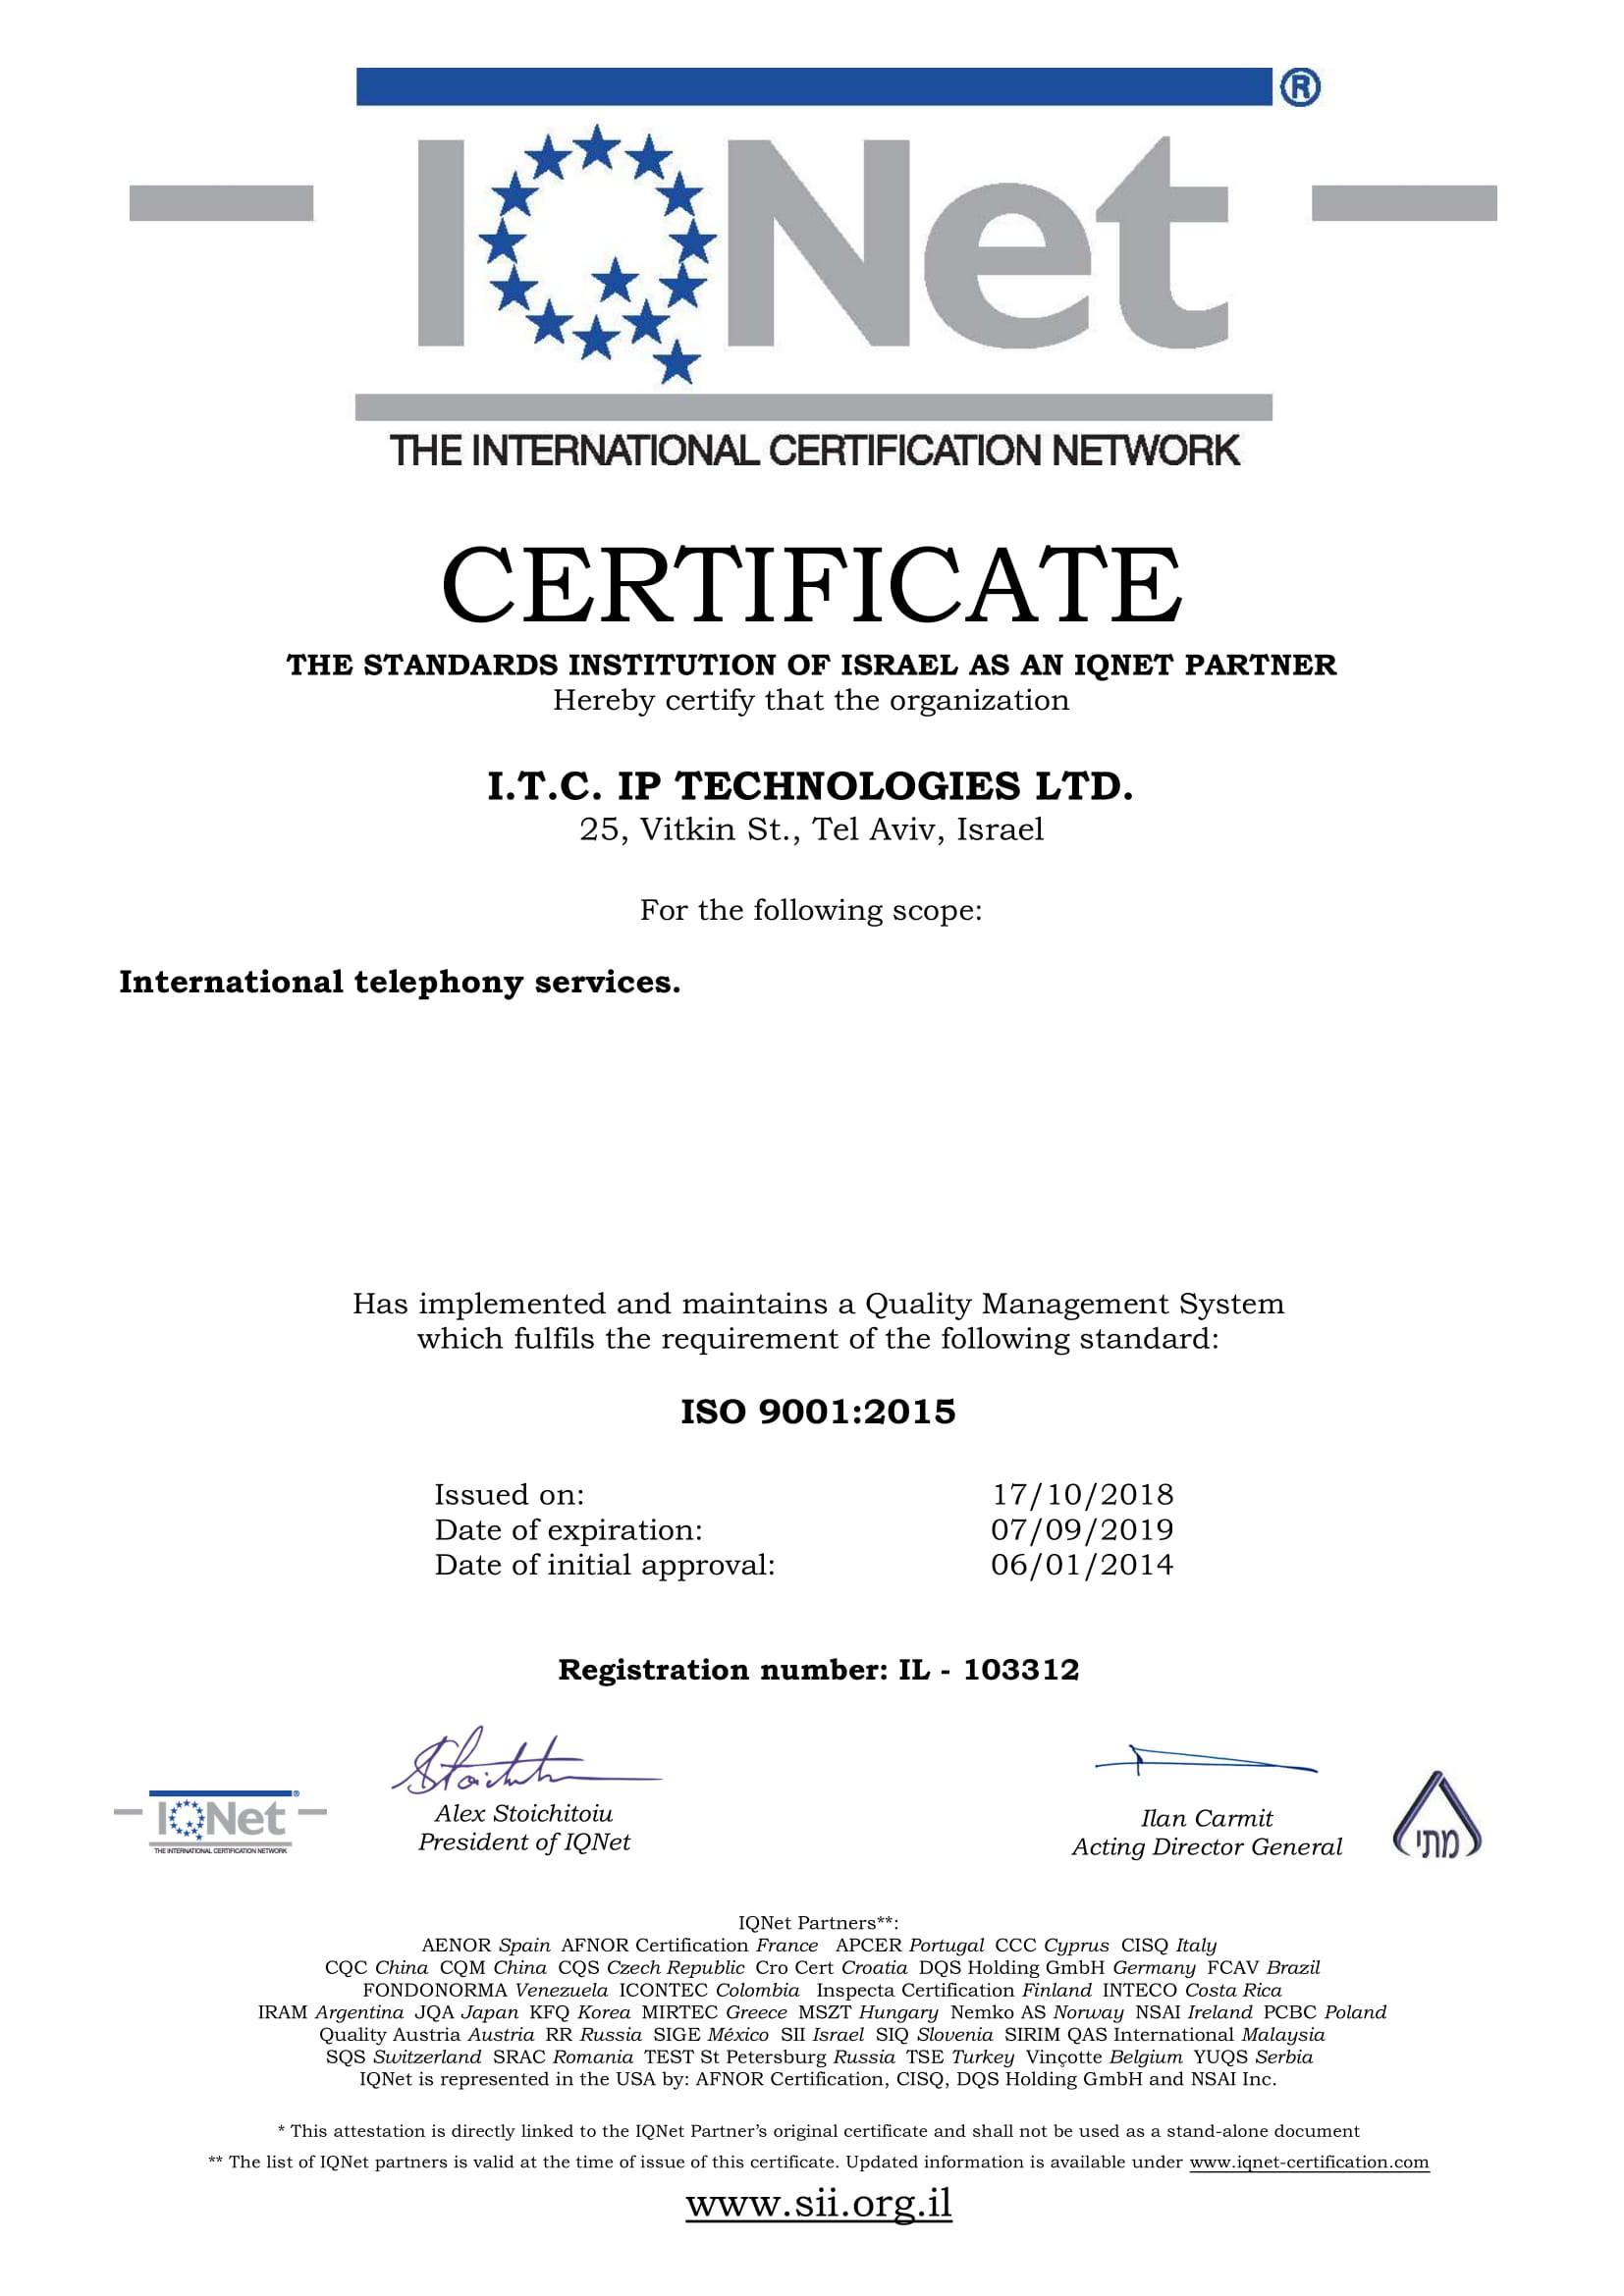 ITC IQNet certification